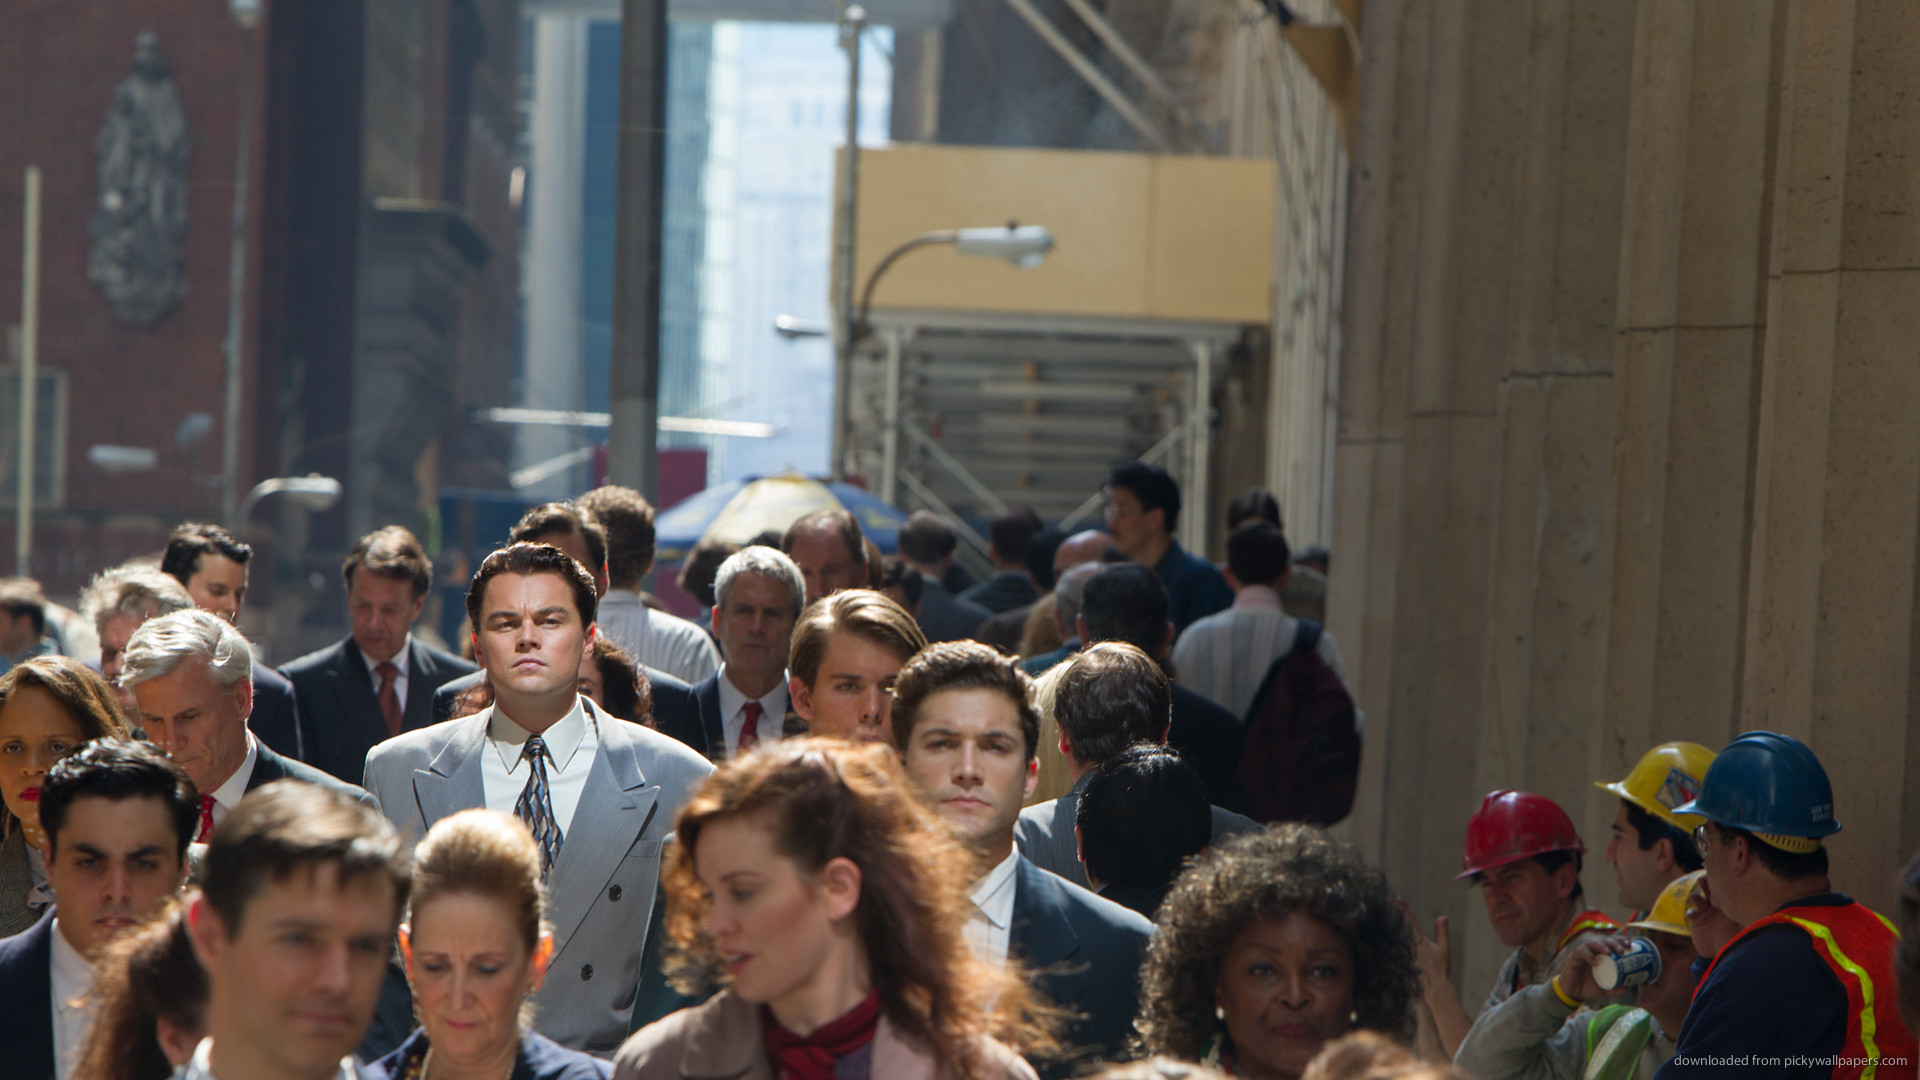 The Wolf Of Wall Street Face In The Crowd for 1920×1080